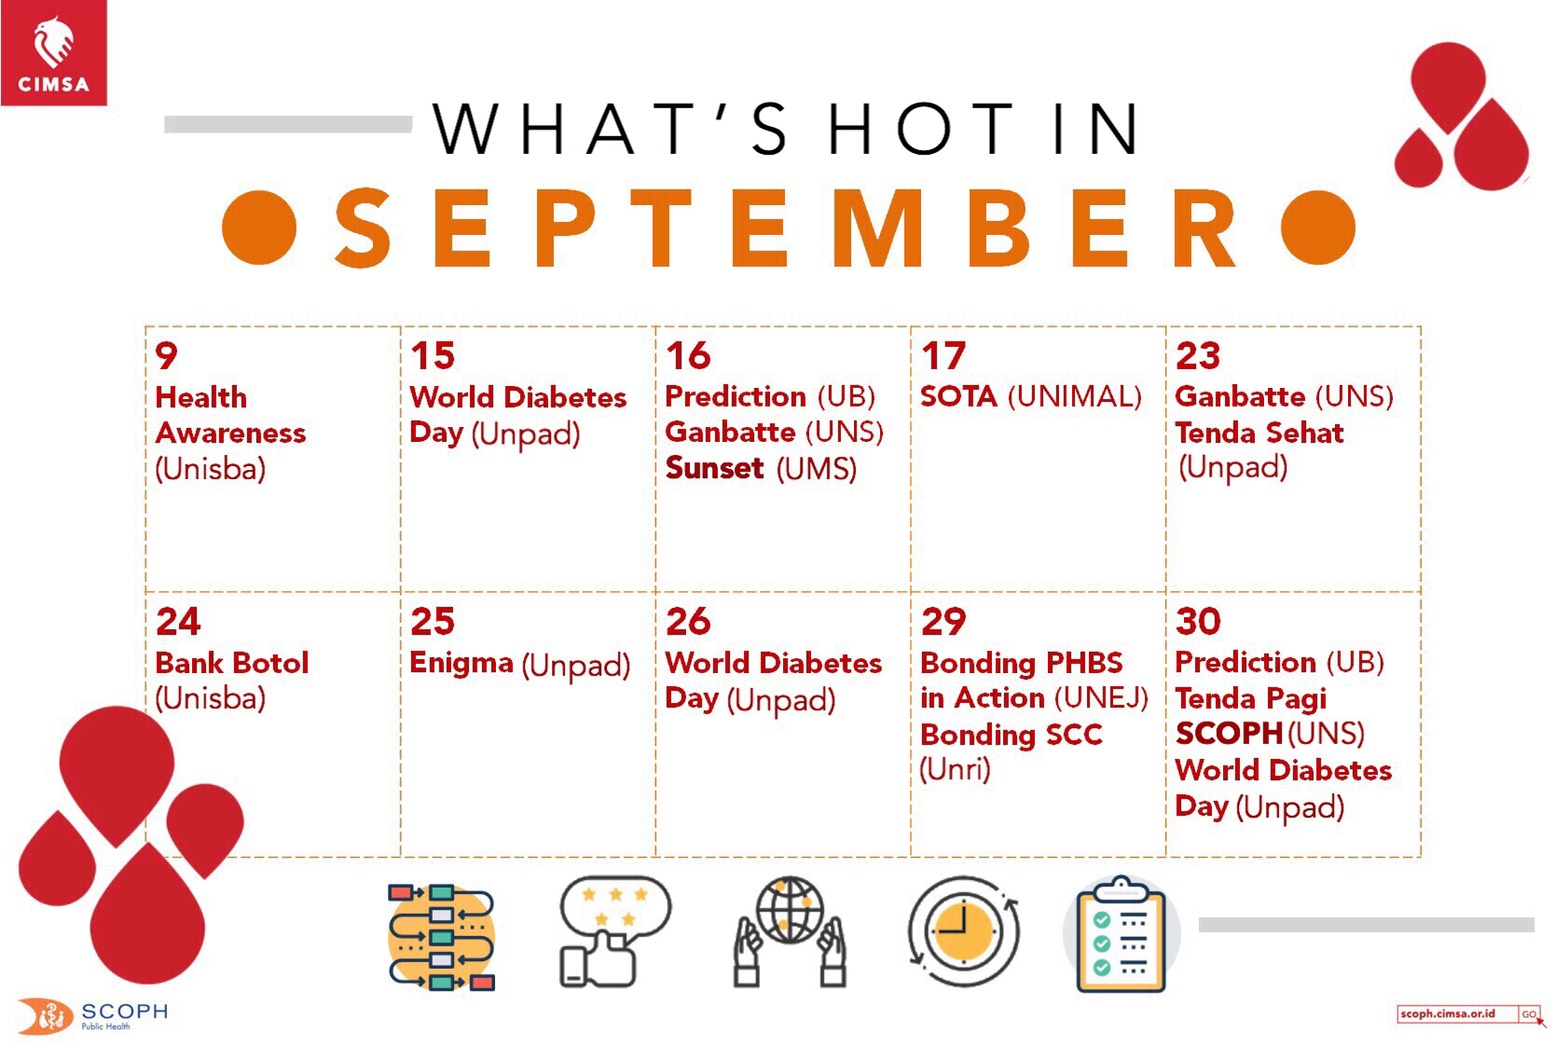 WHAT'S HOT IN SEPTEMBER